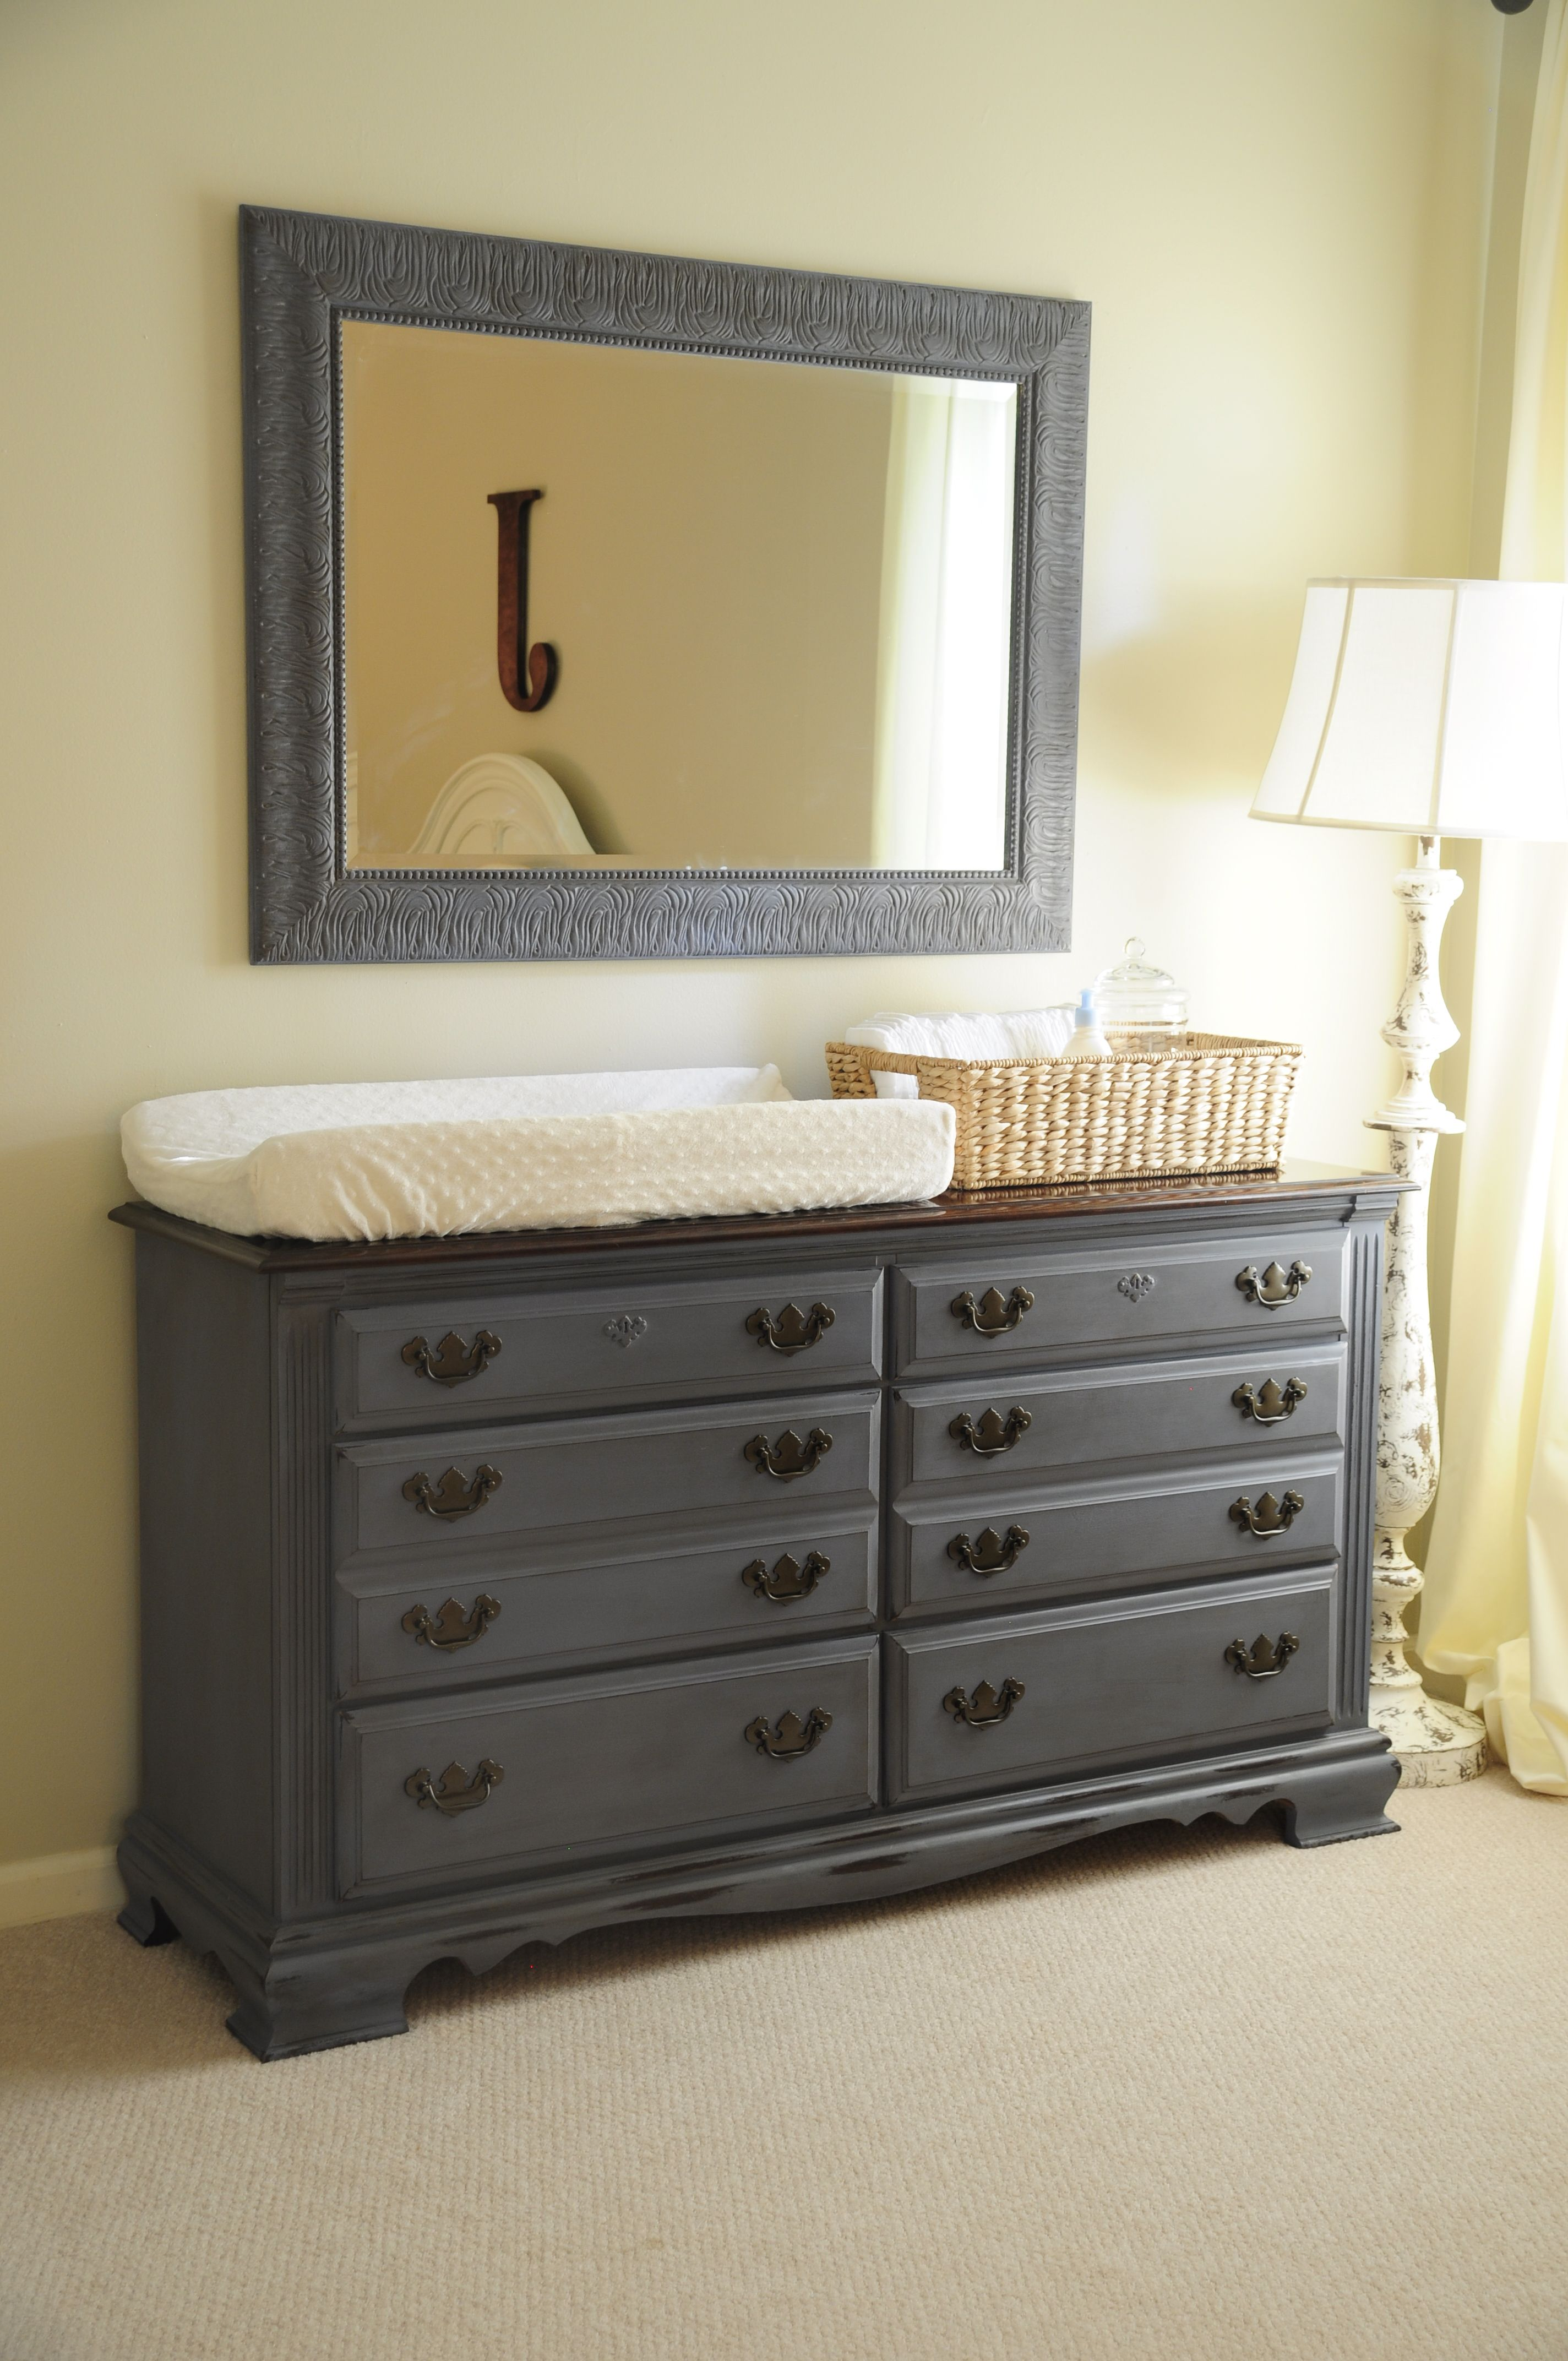 Annie Sloan Painted Furniture With Old White And Graphite